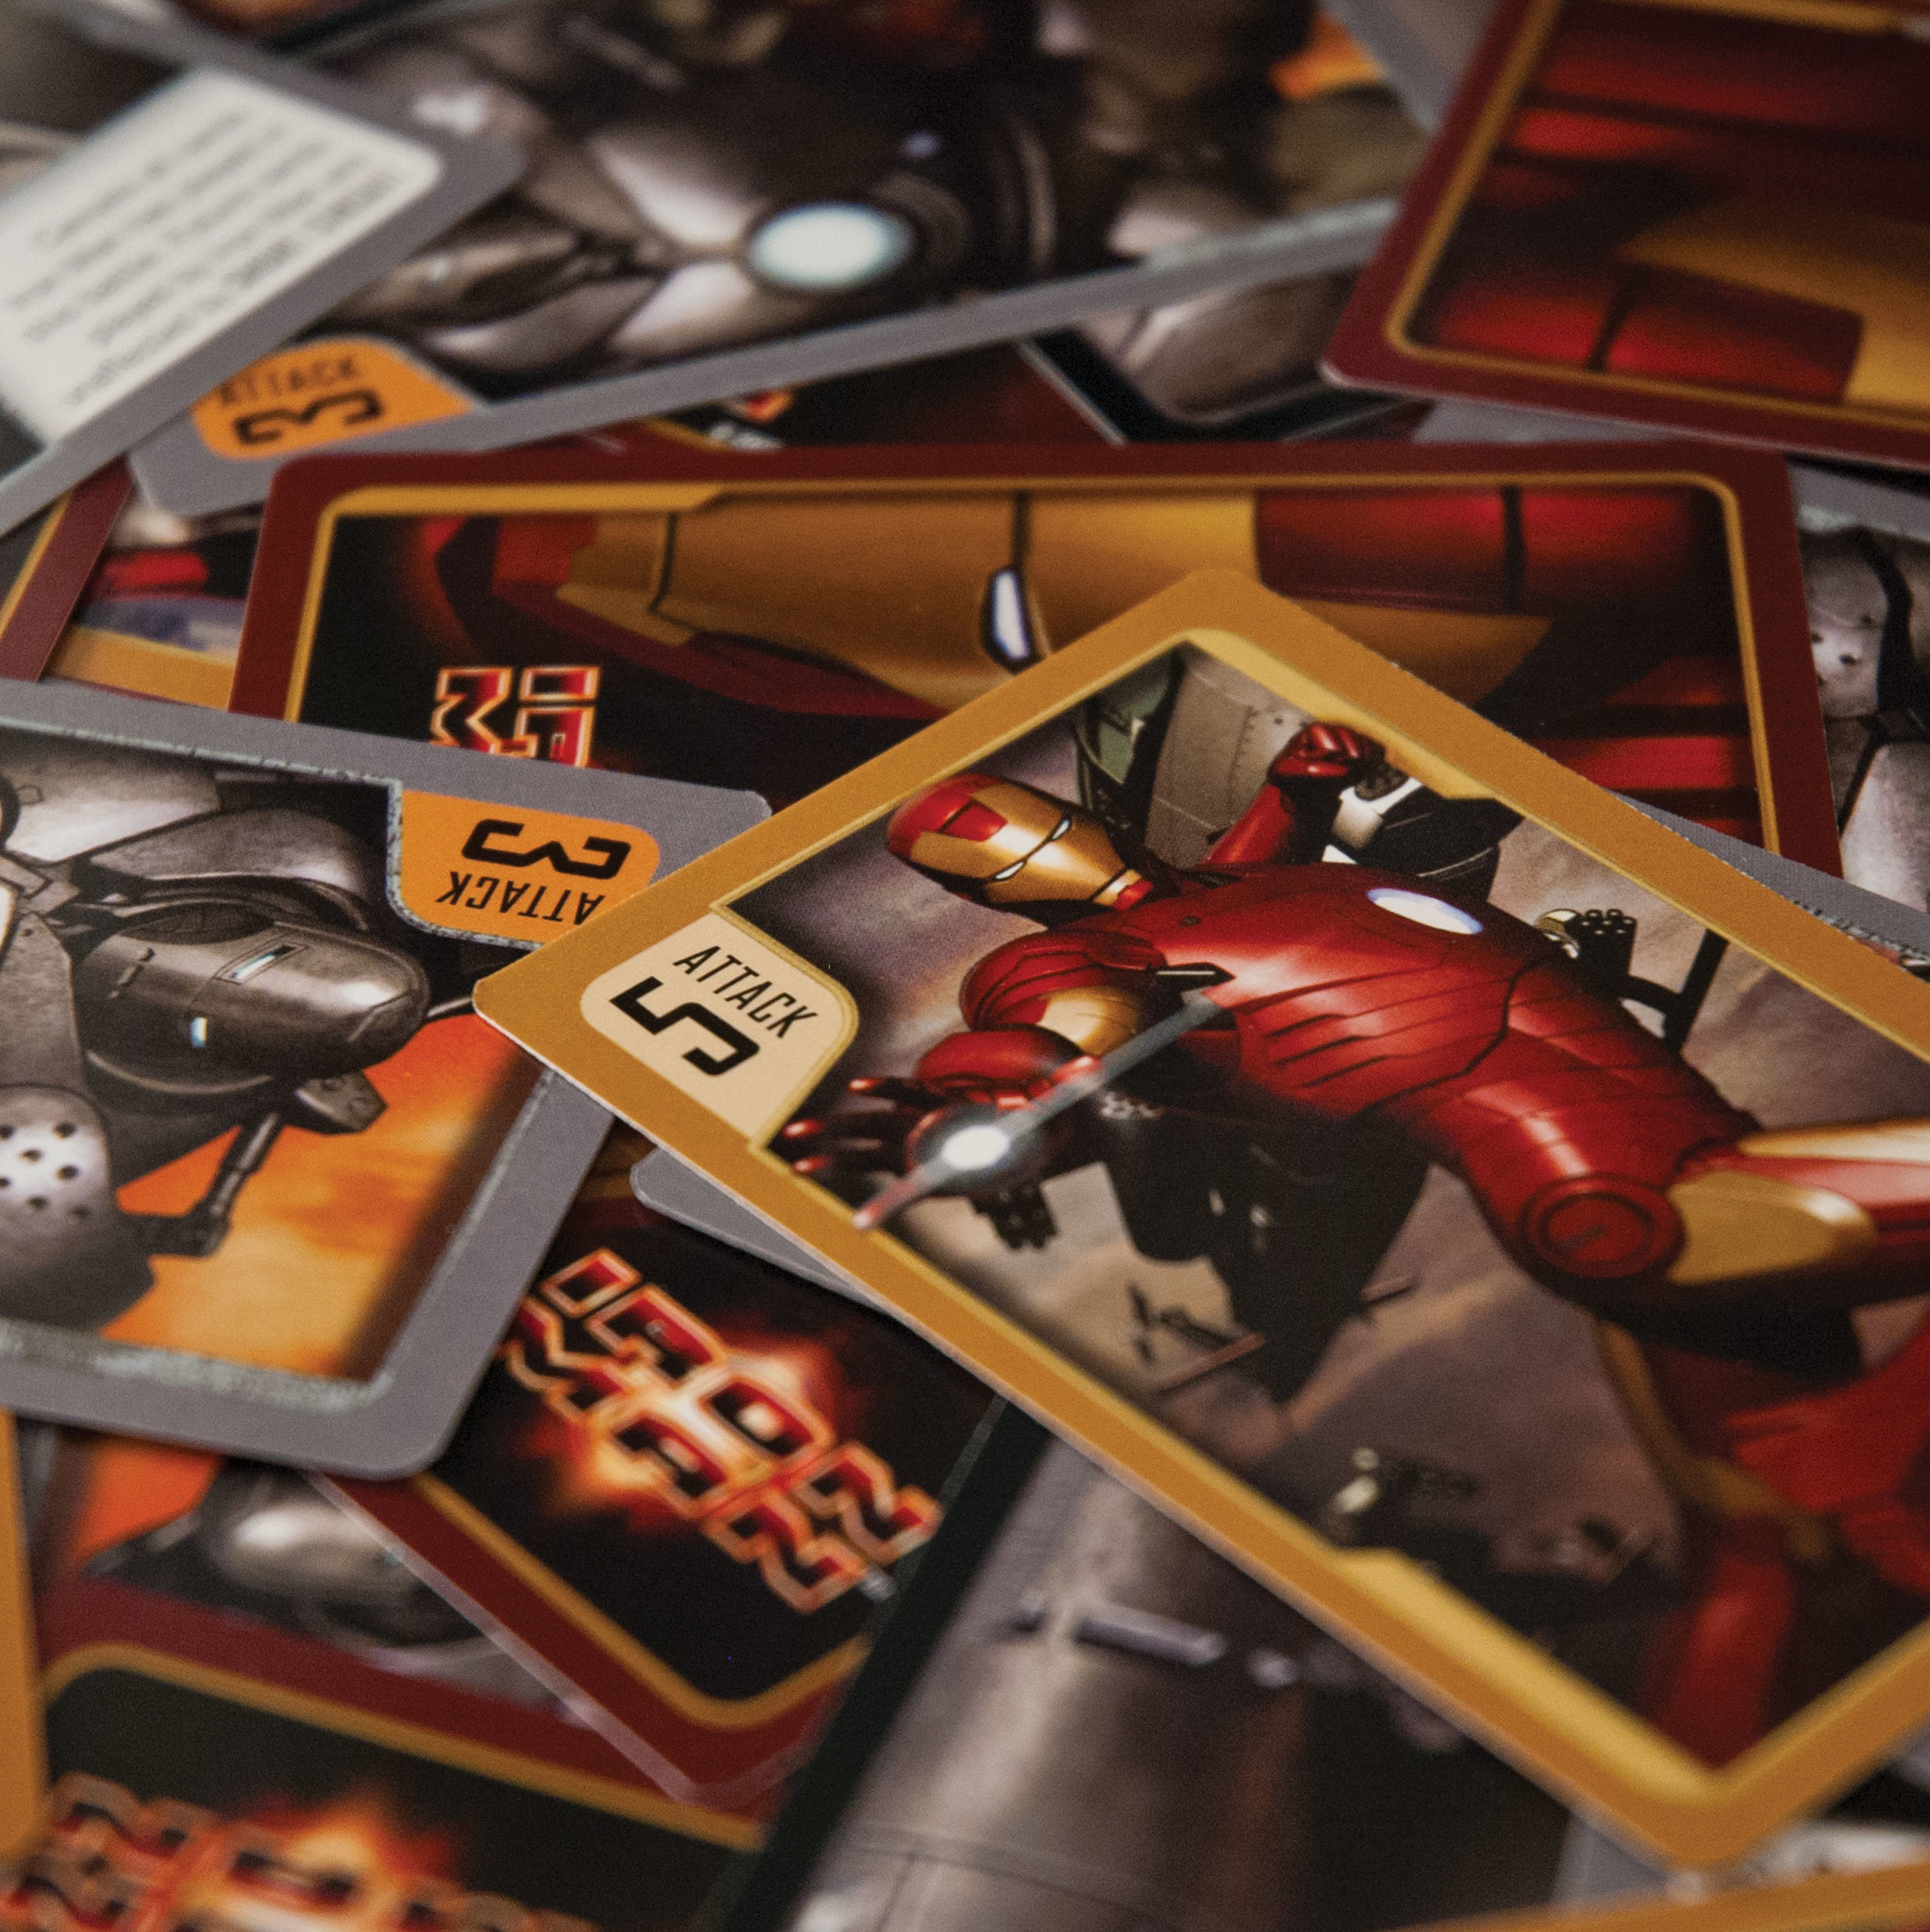 iron-man-cards2.jpg